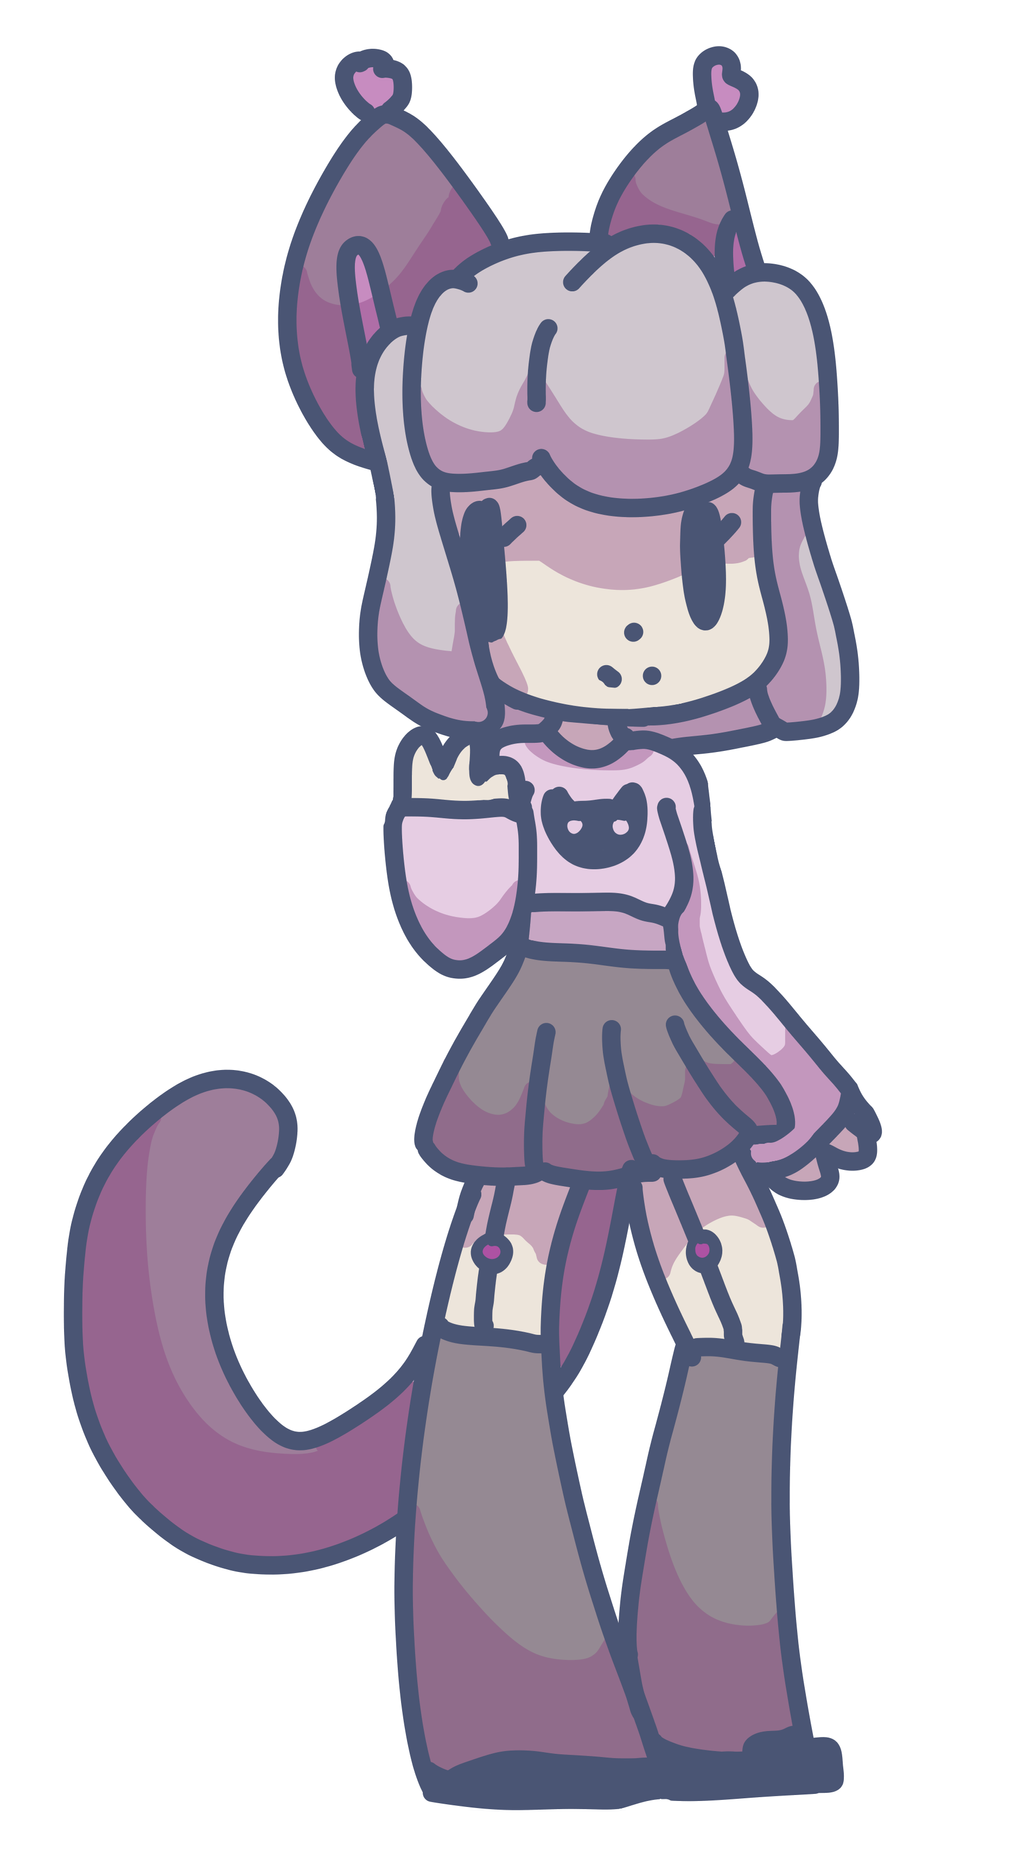 Meow by alliemews